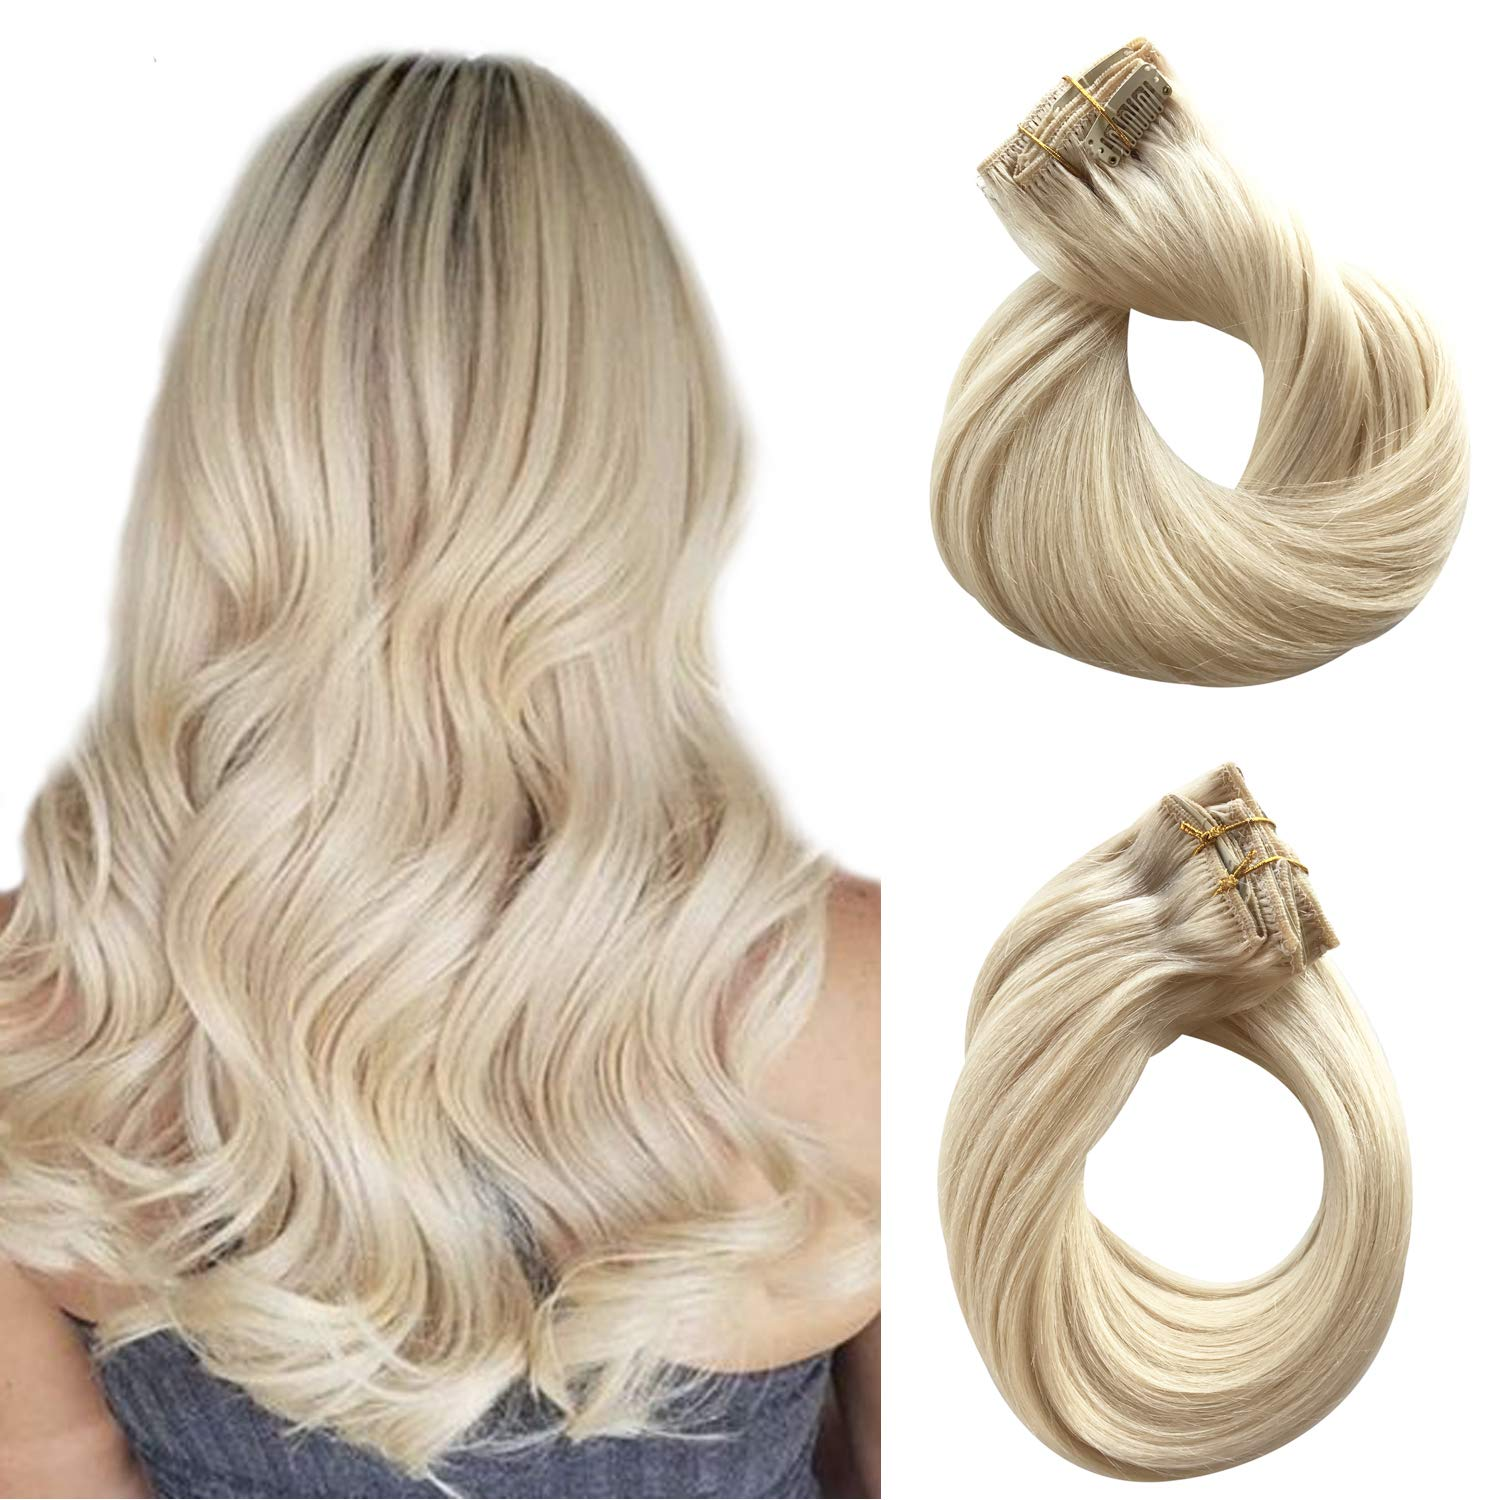 Clip in Hair Extensions Human Hair Platinum Blonde Real Remy Hair Extensions Clip on for Black Women 100% Brazilian Virgin Hair 120g Double Weft Full Head Straight Ponytail 7pcs 17 Clips 14 Inch